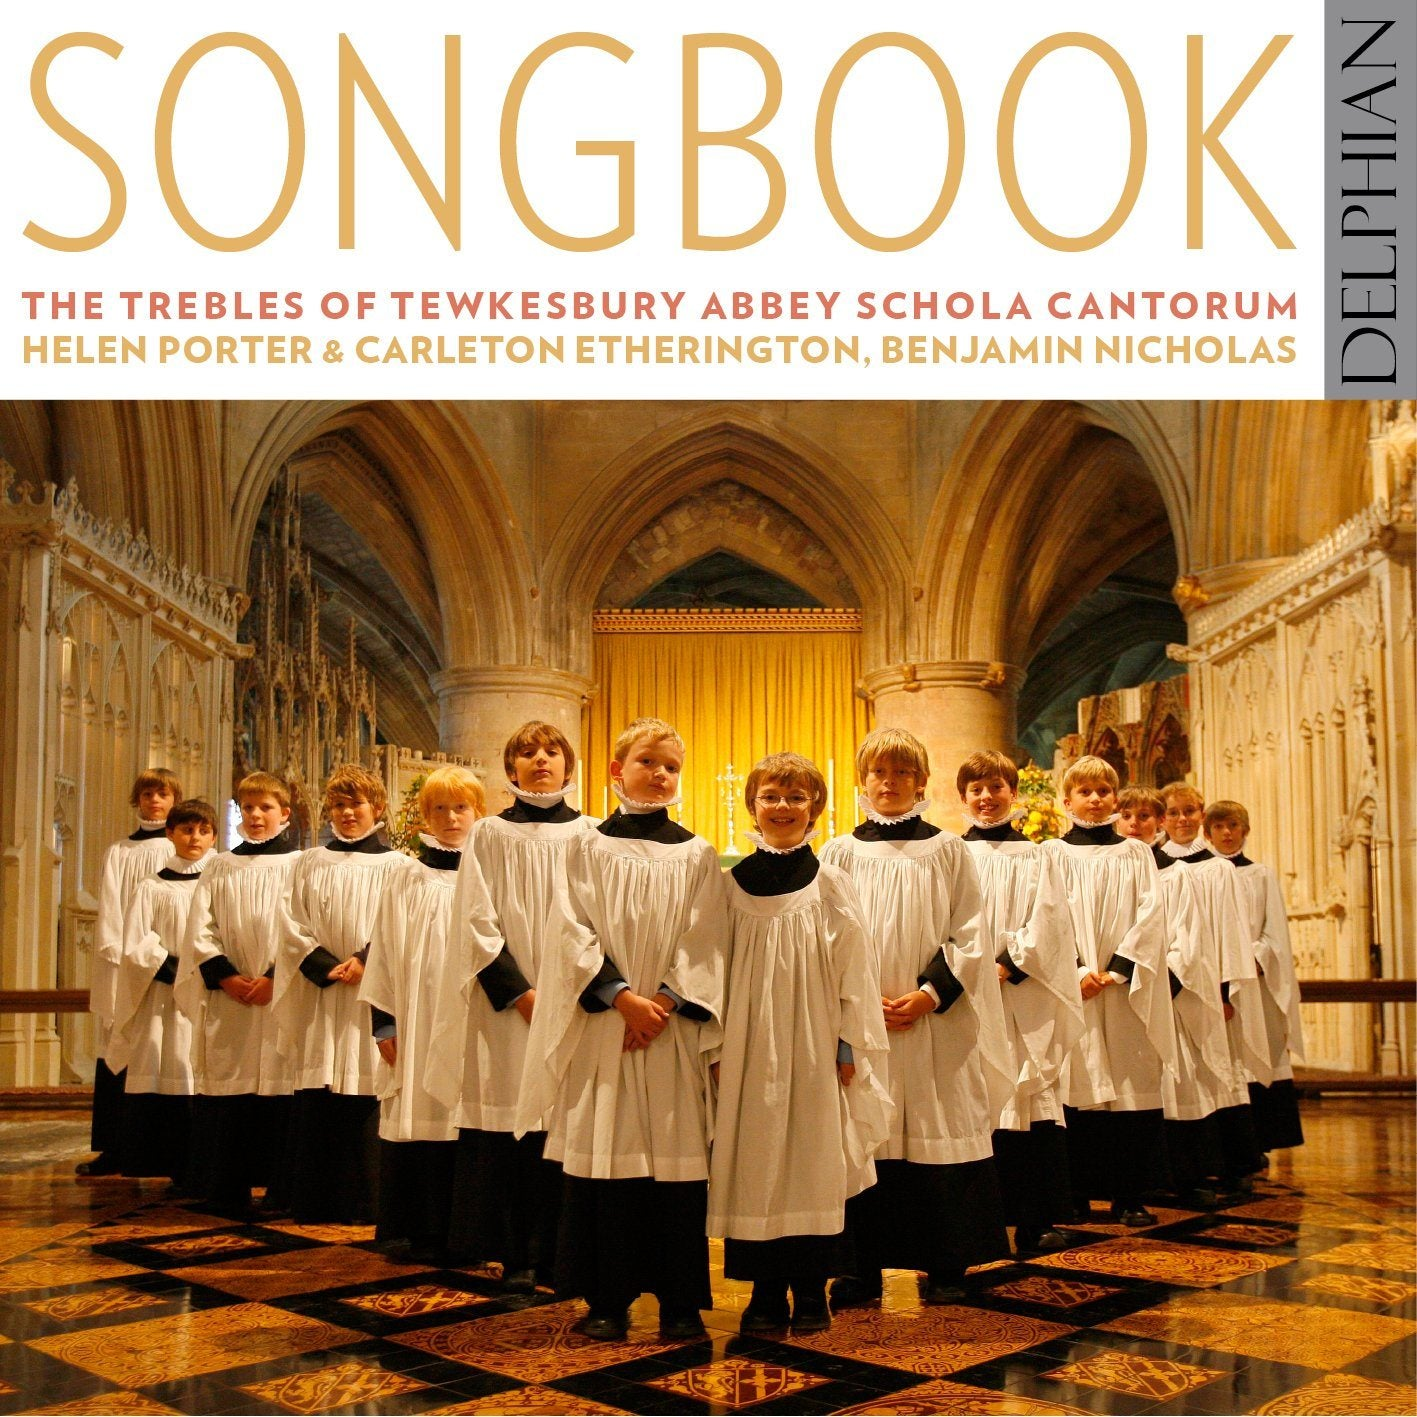 Songbook CD Delphian Records